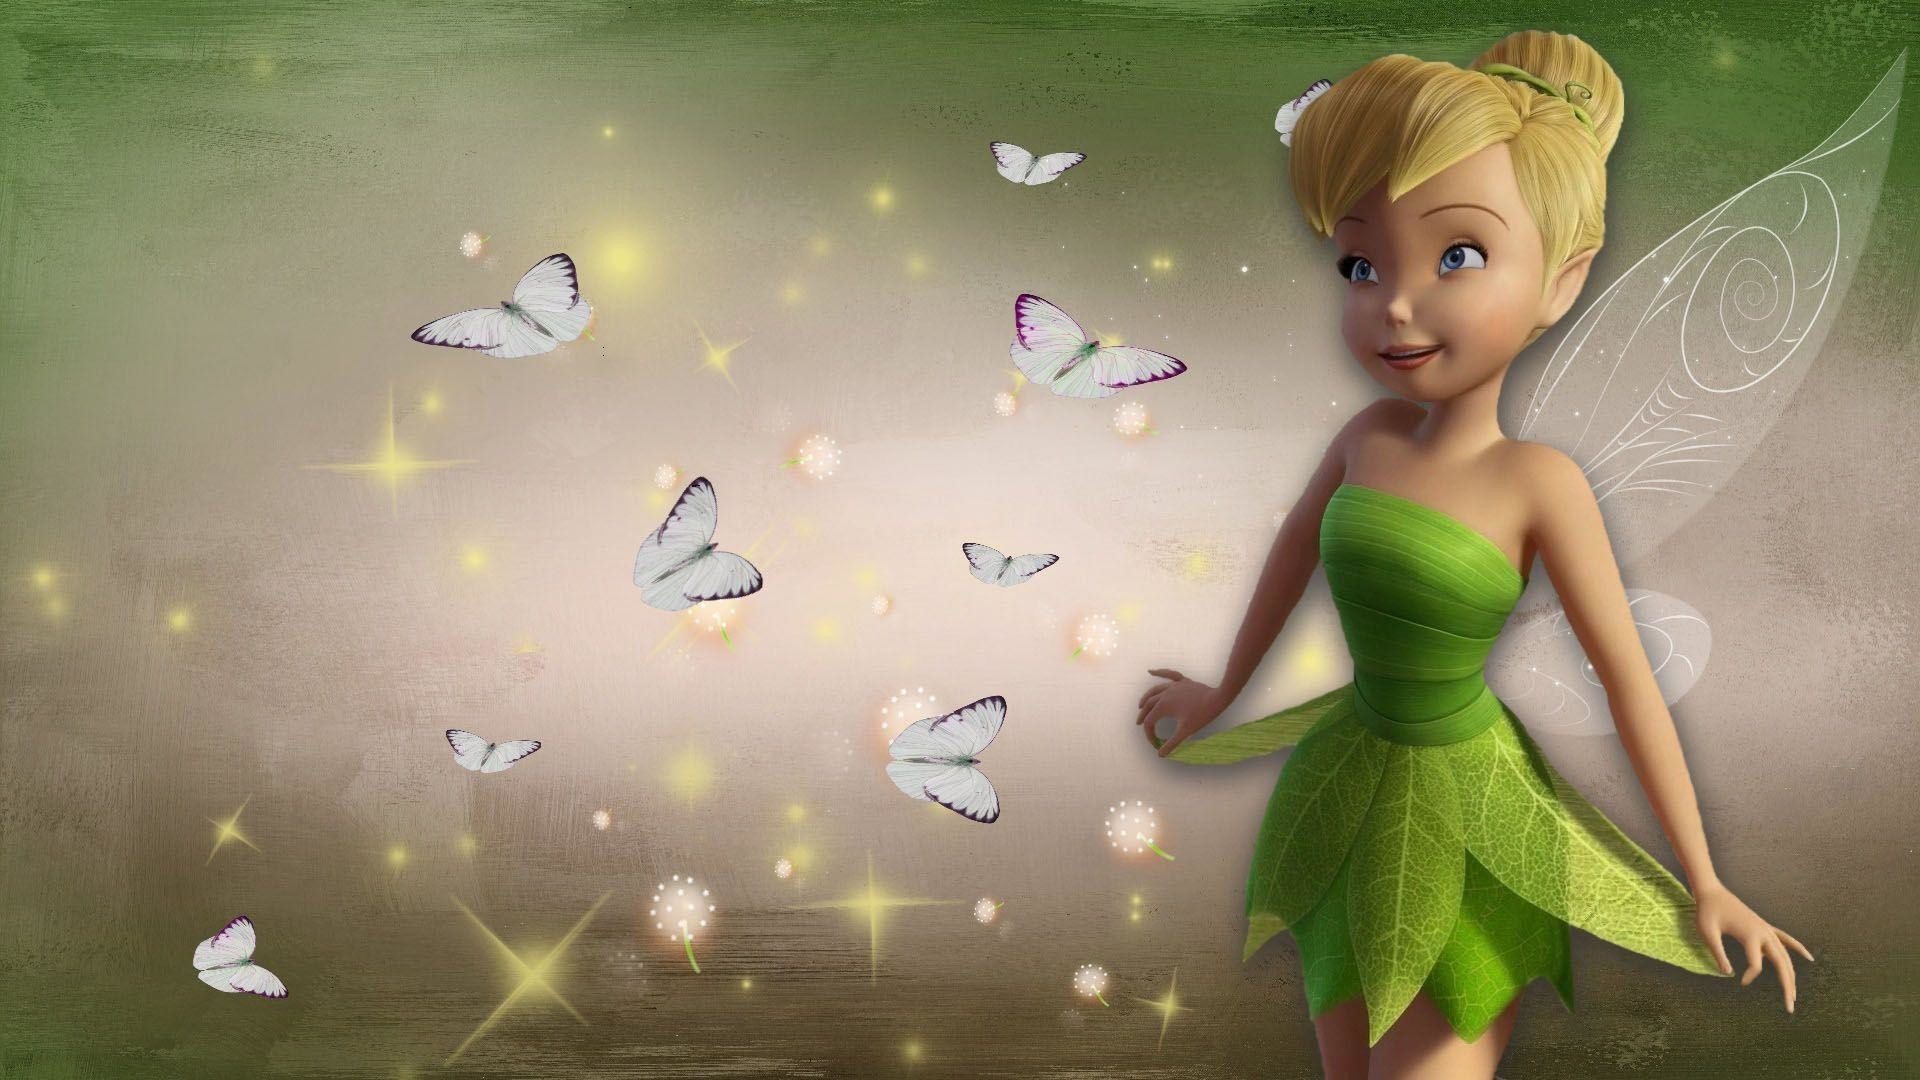 Tinkerbell Wallpaper For Iphone 6 Tinkerbell Christmas Wallpaper 52 Images